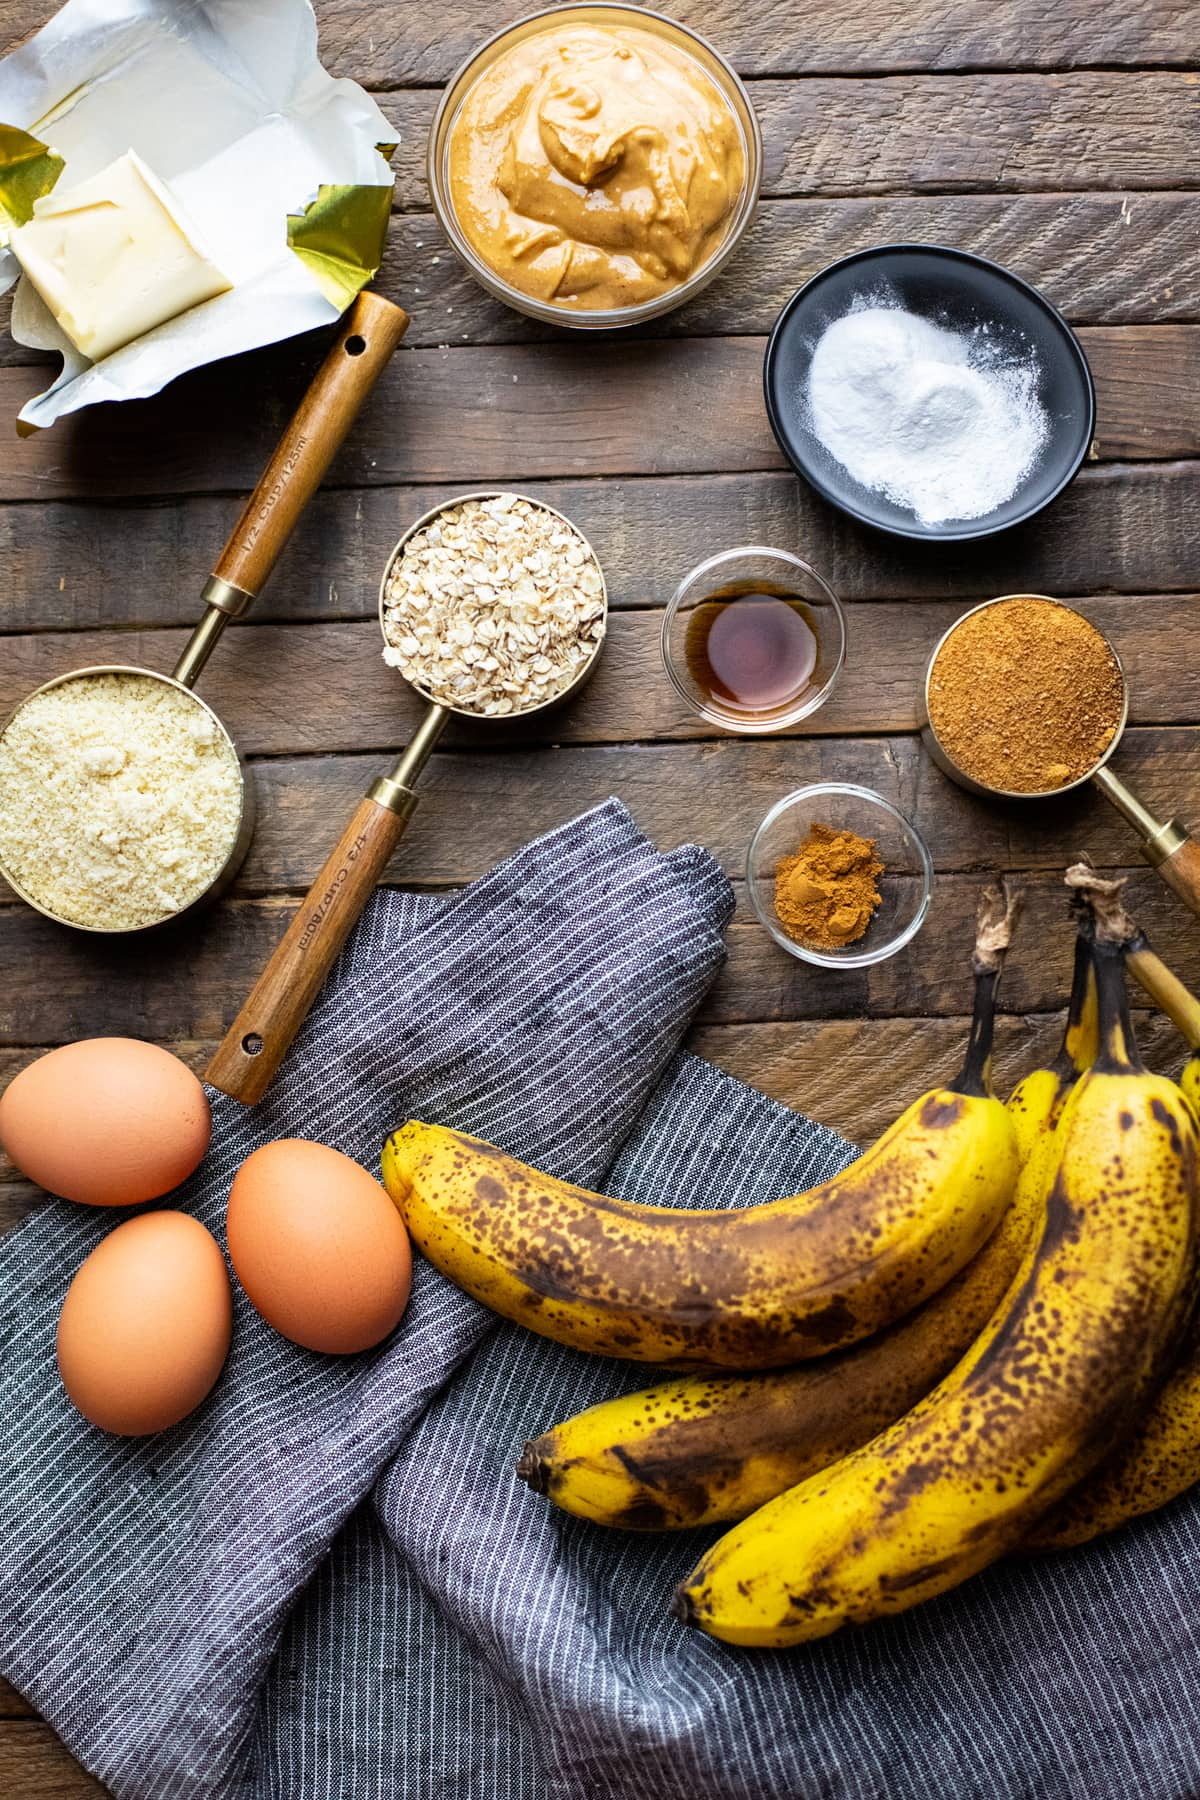 Ingredients for flourless banana bread arranged on brown wooden board.